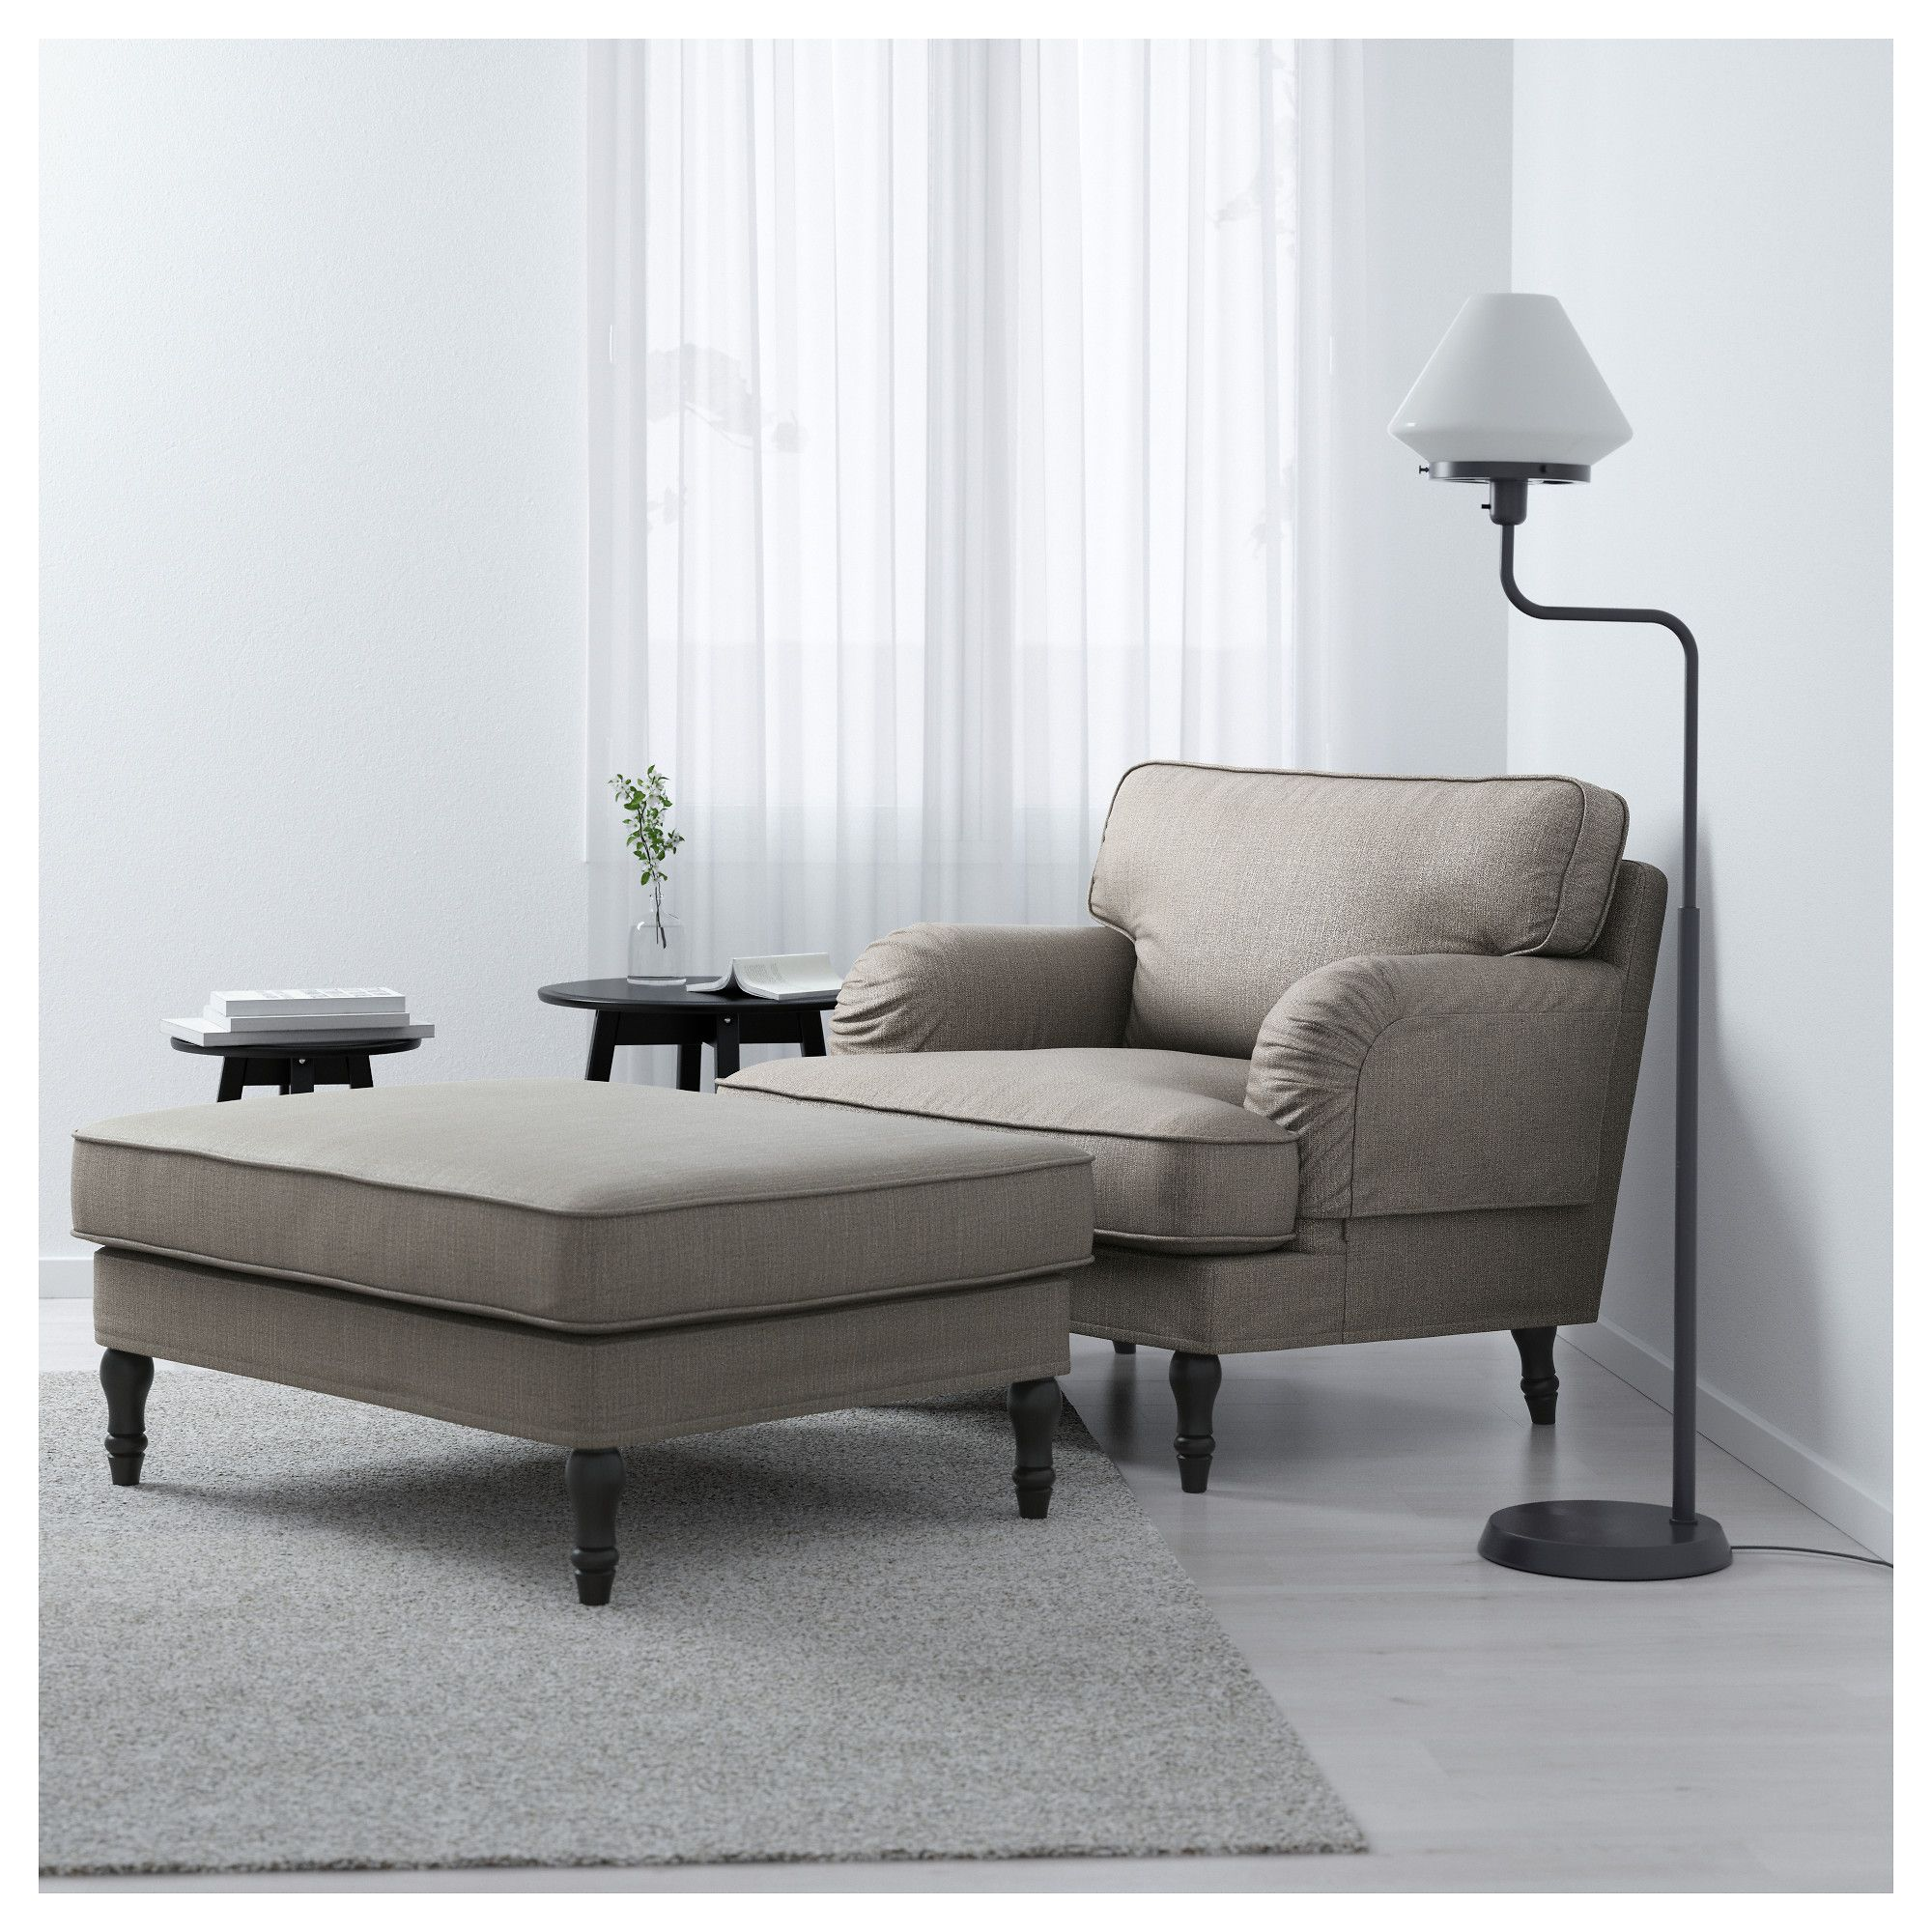 Ikea Stocksund Footstool Works As An Extra Seat Or A